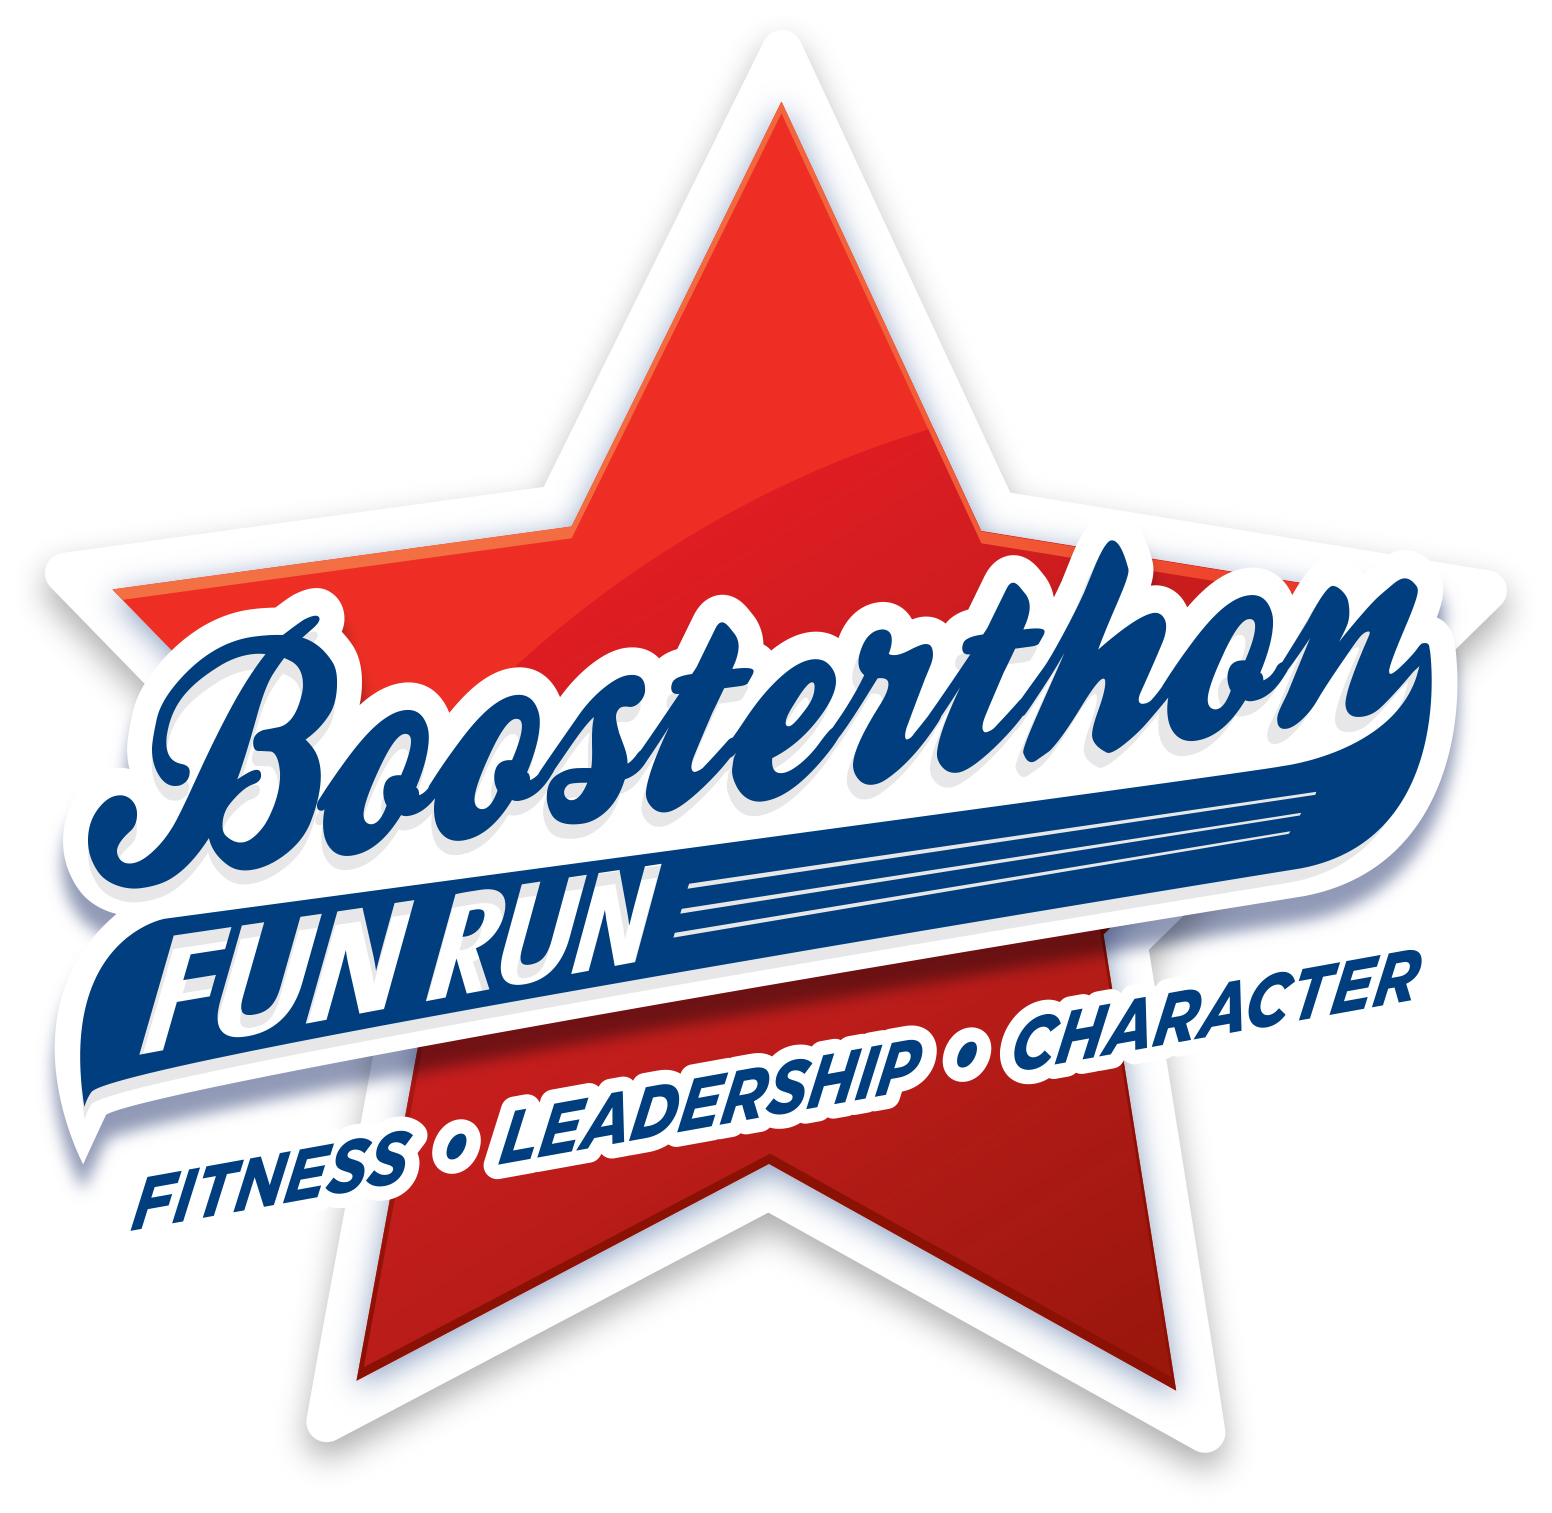 Boosterthon Fun Run